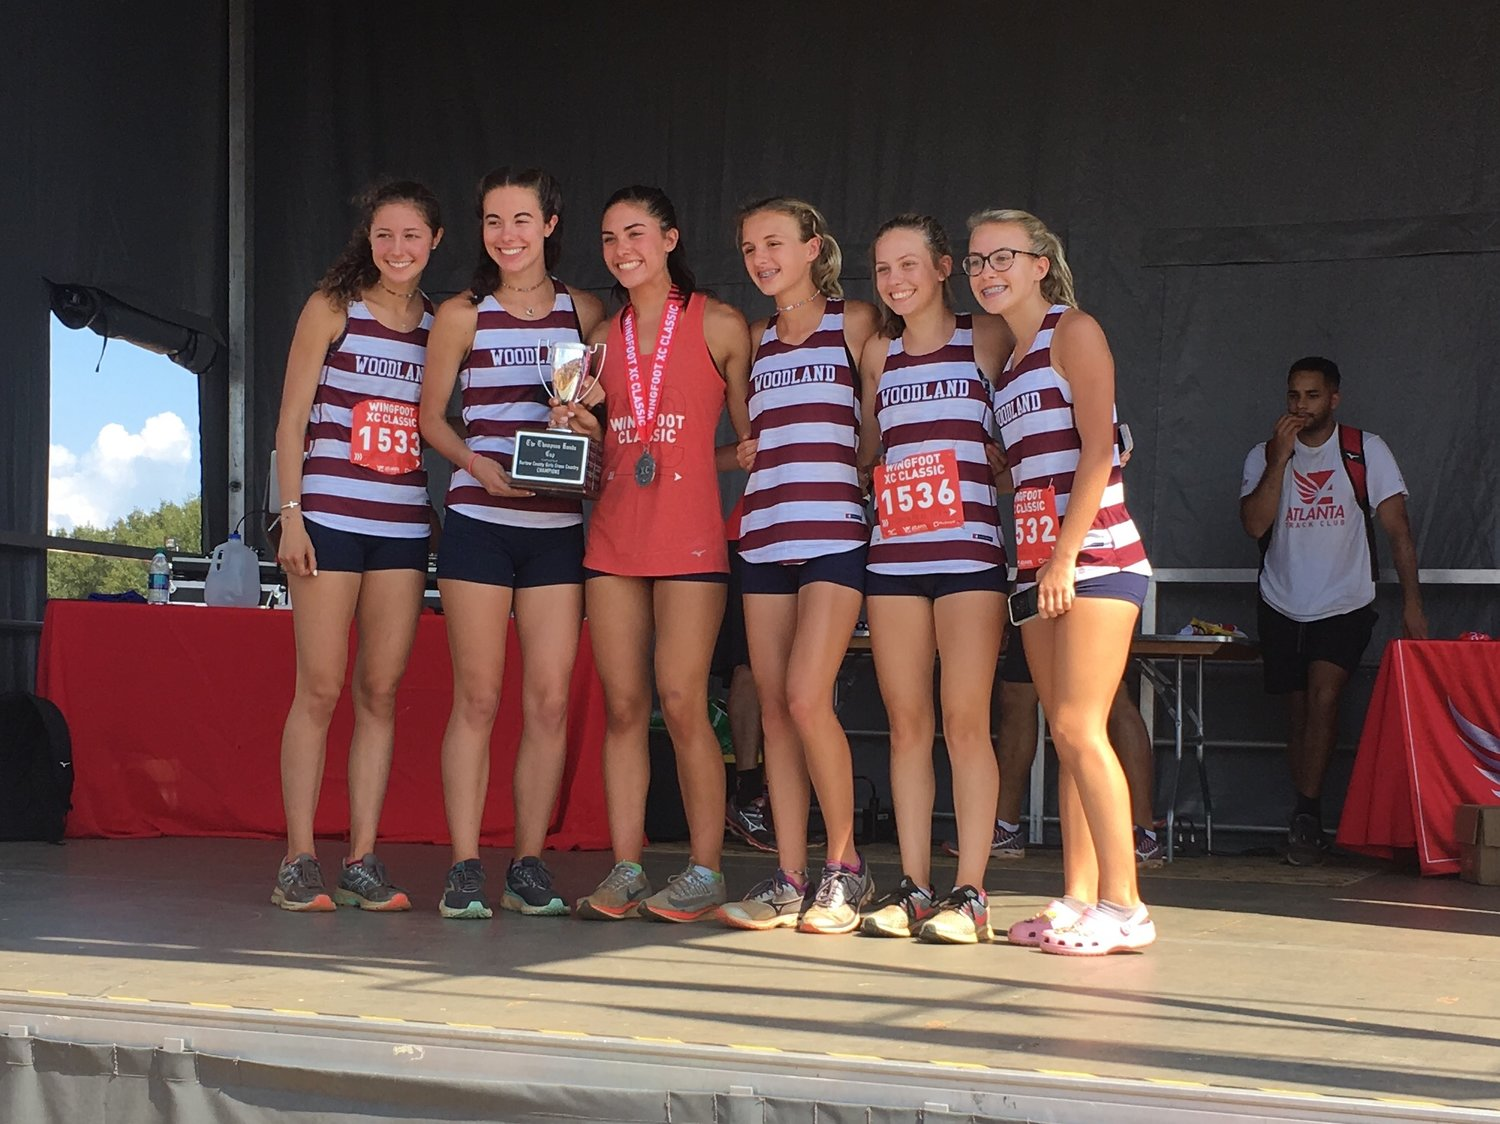 The Woodland High girls cross country team was crowned girls Bartow County champ after placing fourth in the championship race Saturday during the Wingfoot XC Classic at Sam Smith Park.